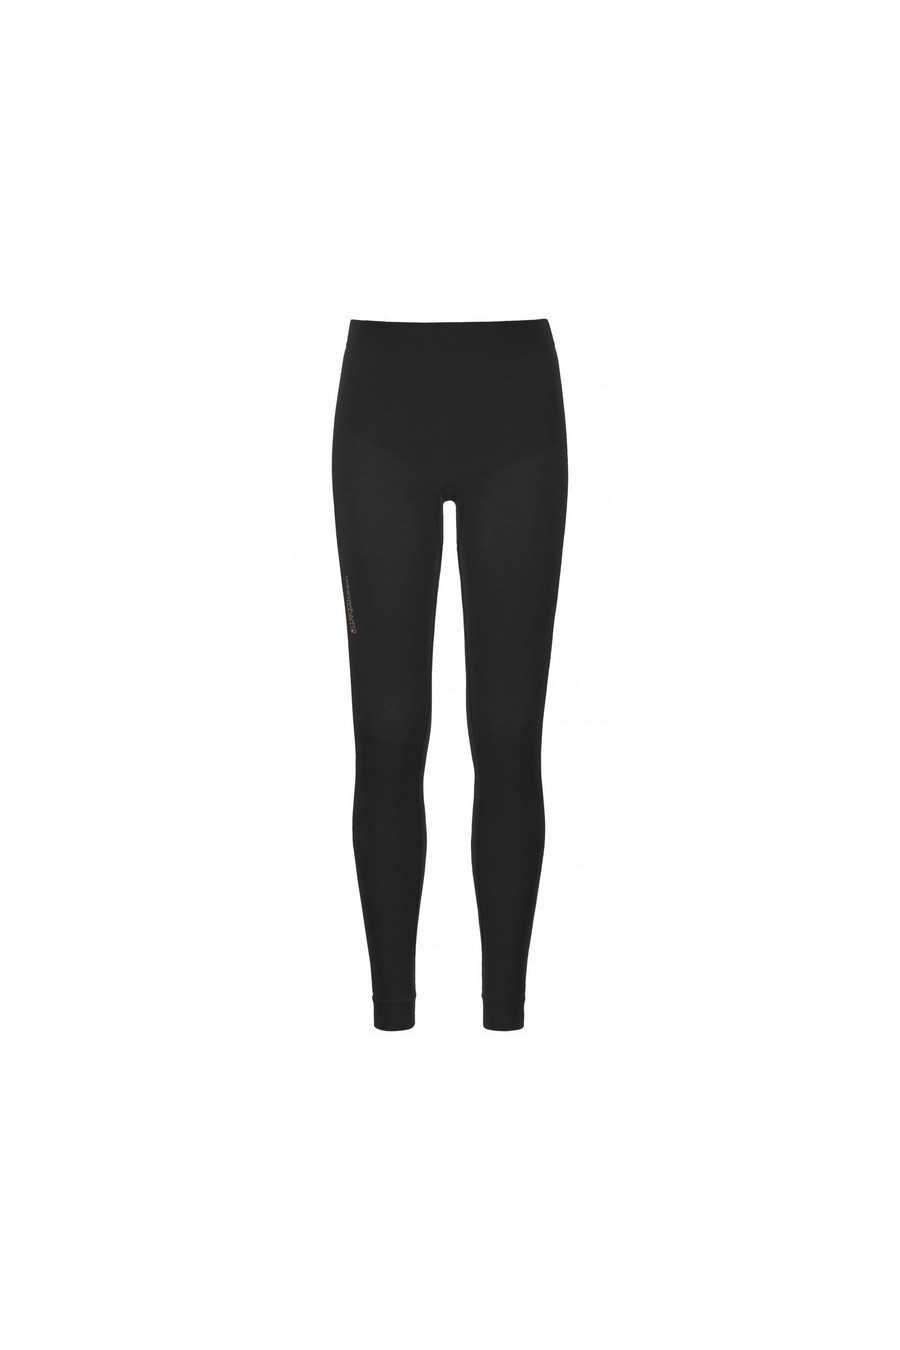 Ortovox 230 Merino Competition Long Pants Woman